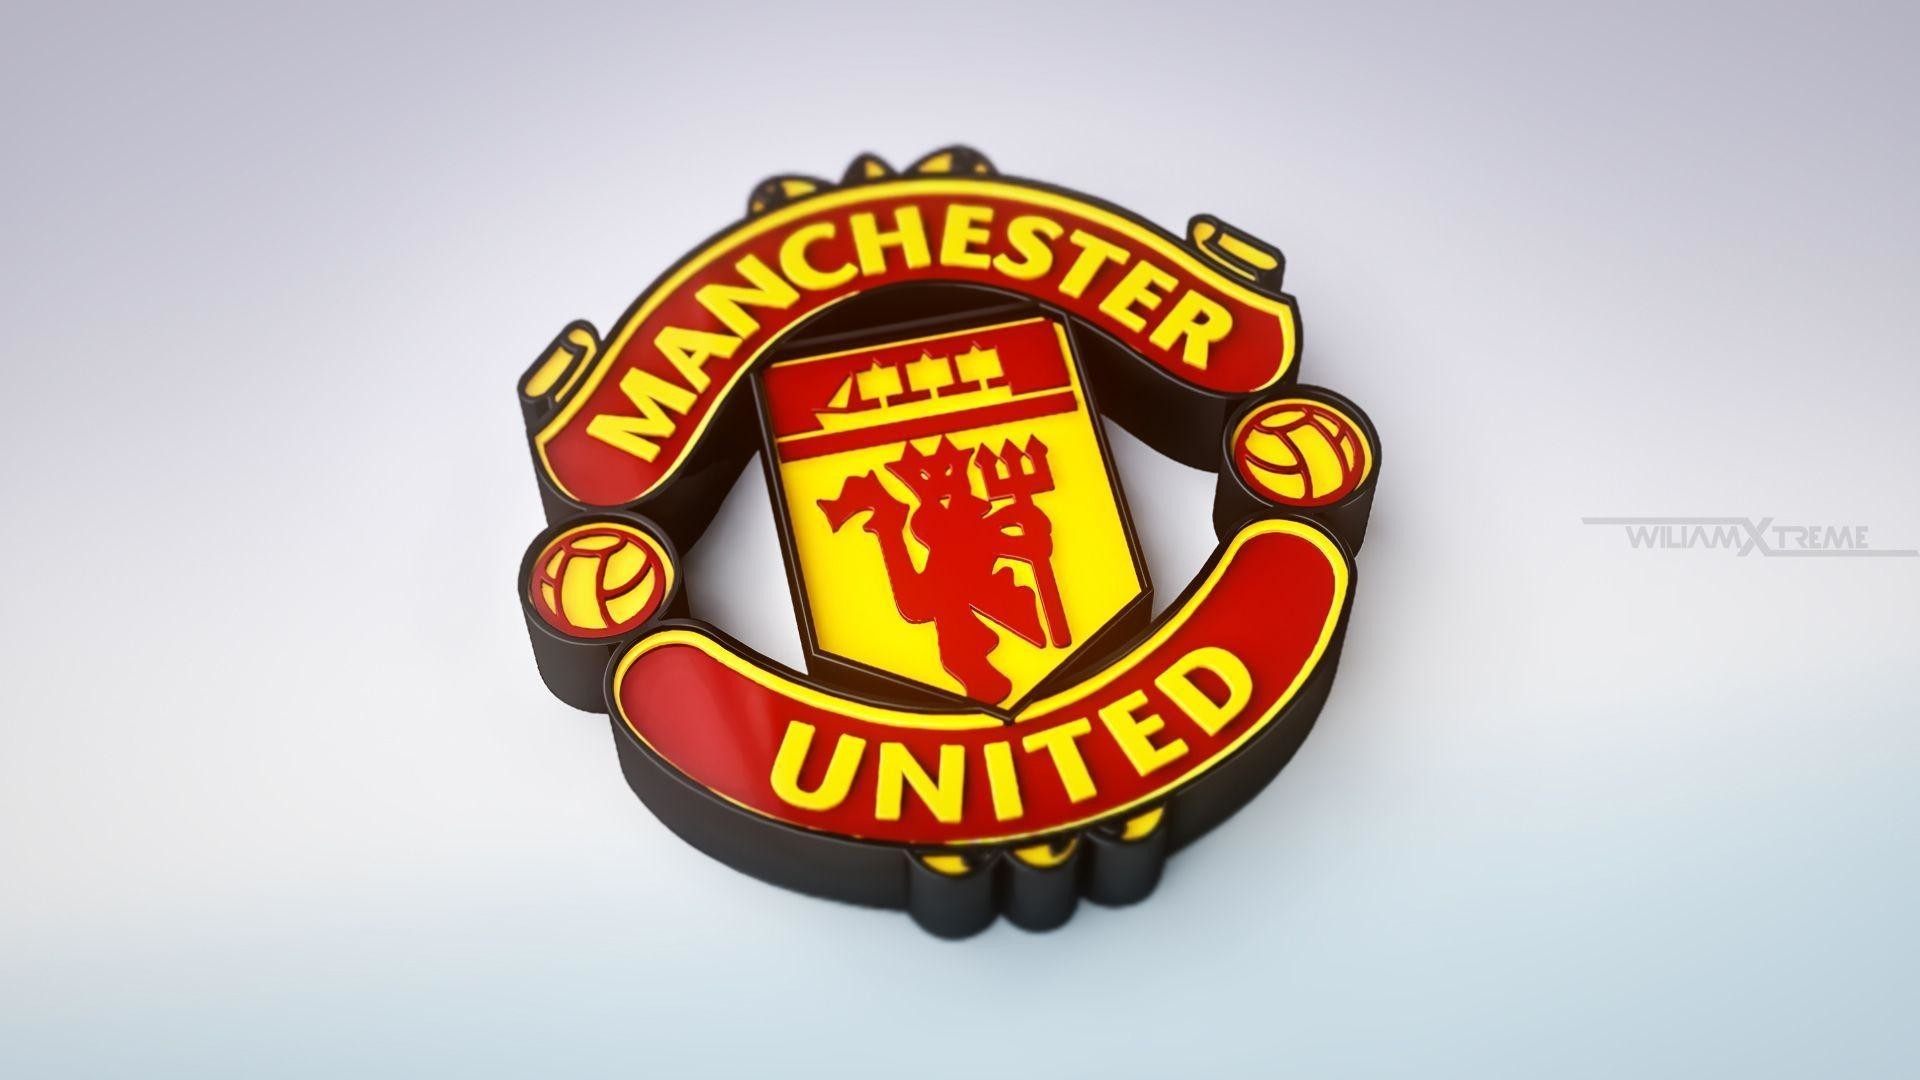 1920x1080 1920x1080 Manchester United Logo Wallpapers HD 2016 - Wallpaper Cave